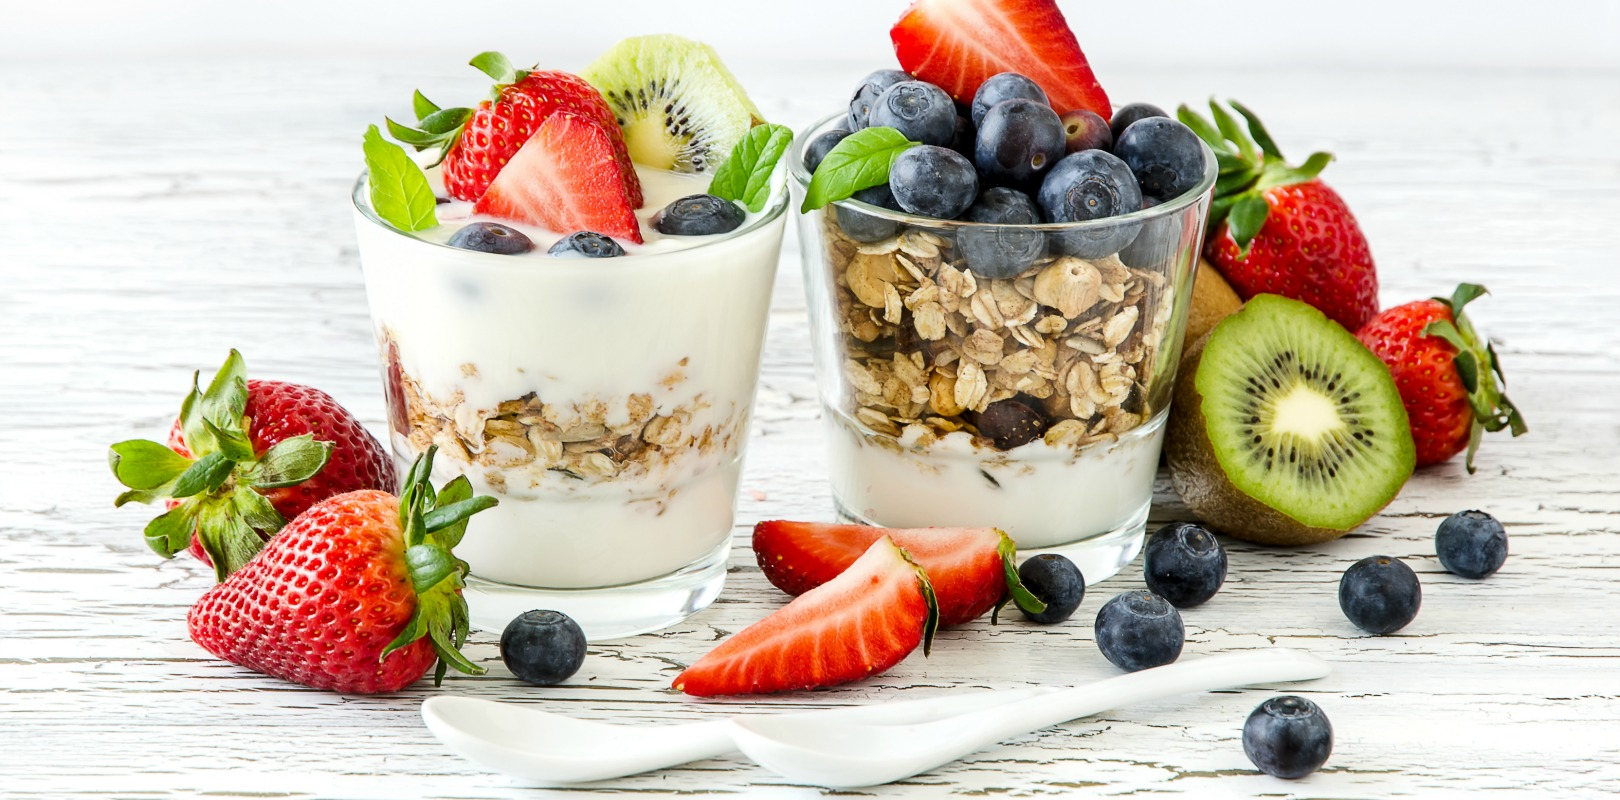 Discussion on this topic: Yogurt Nutrition and Health Benefits, yogurt-nutrition-and-health-benefits/